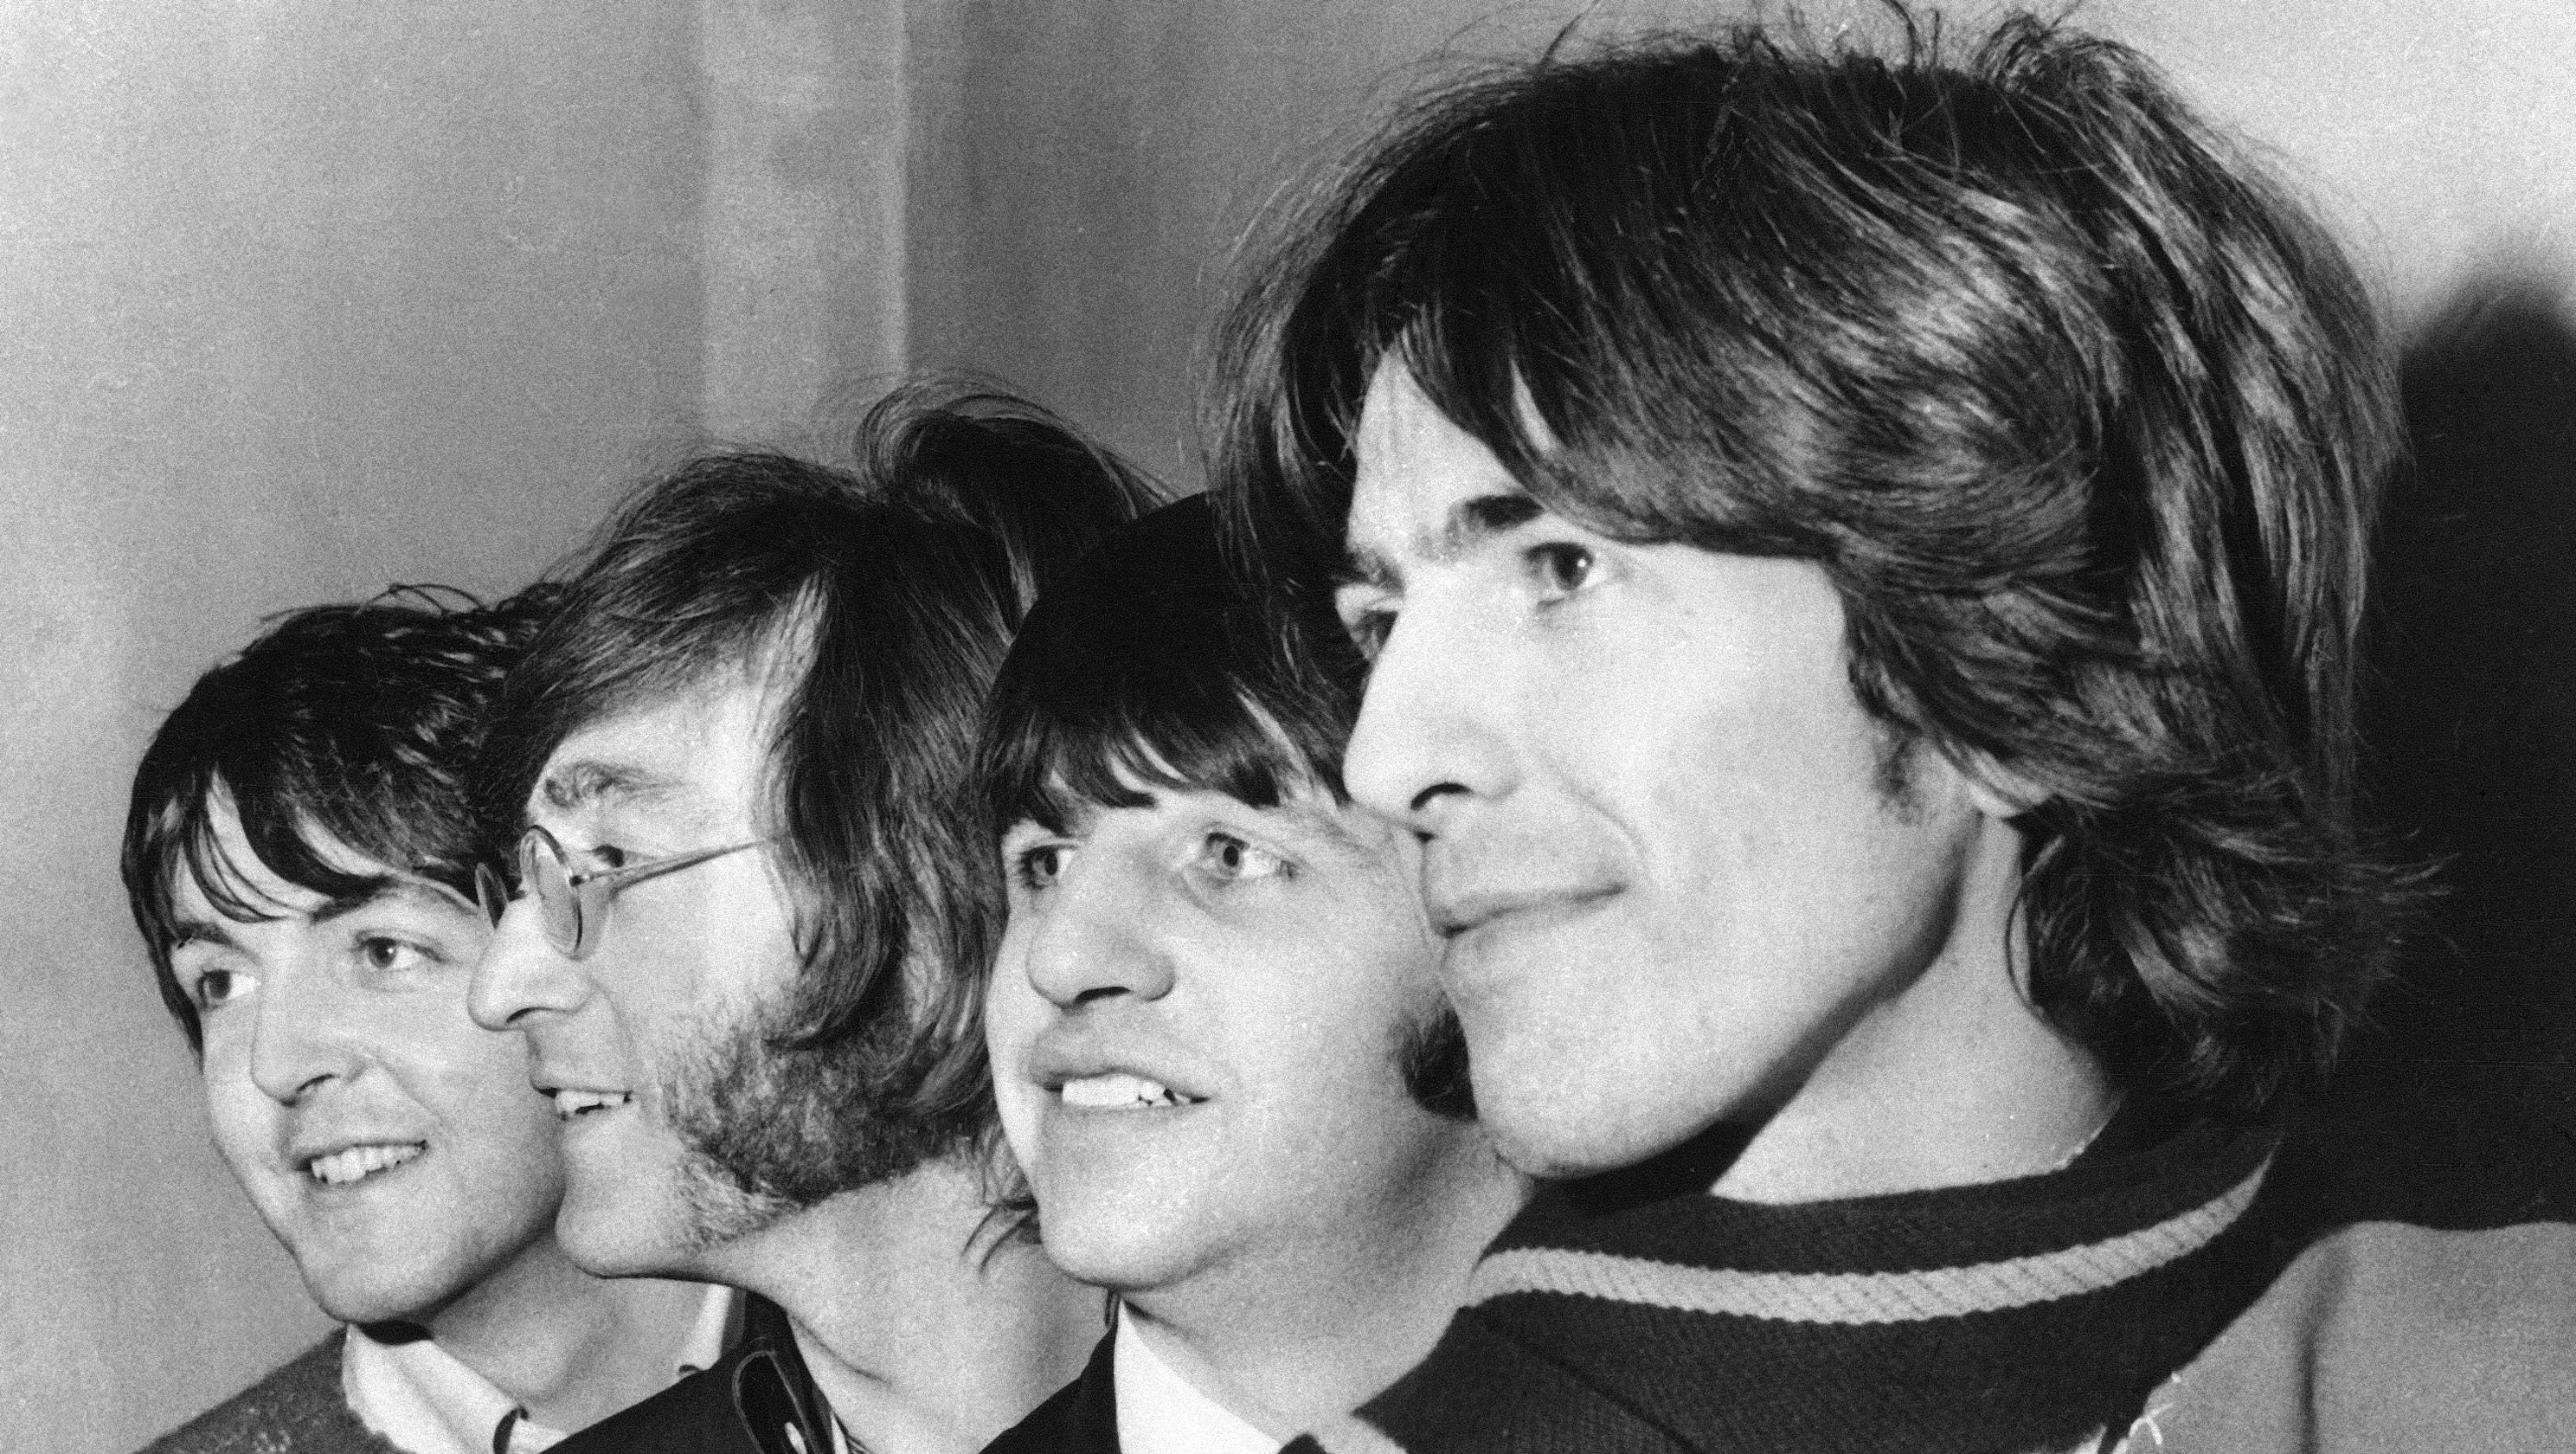 The Beatles' 'White Album' turns 50: Every song on the album